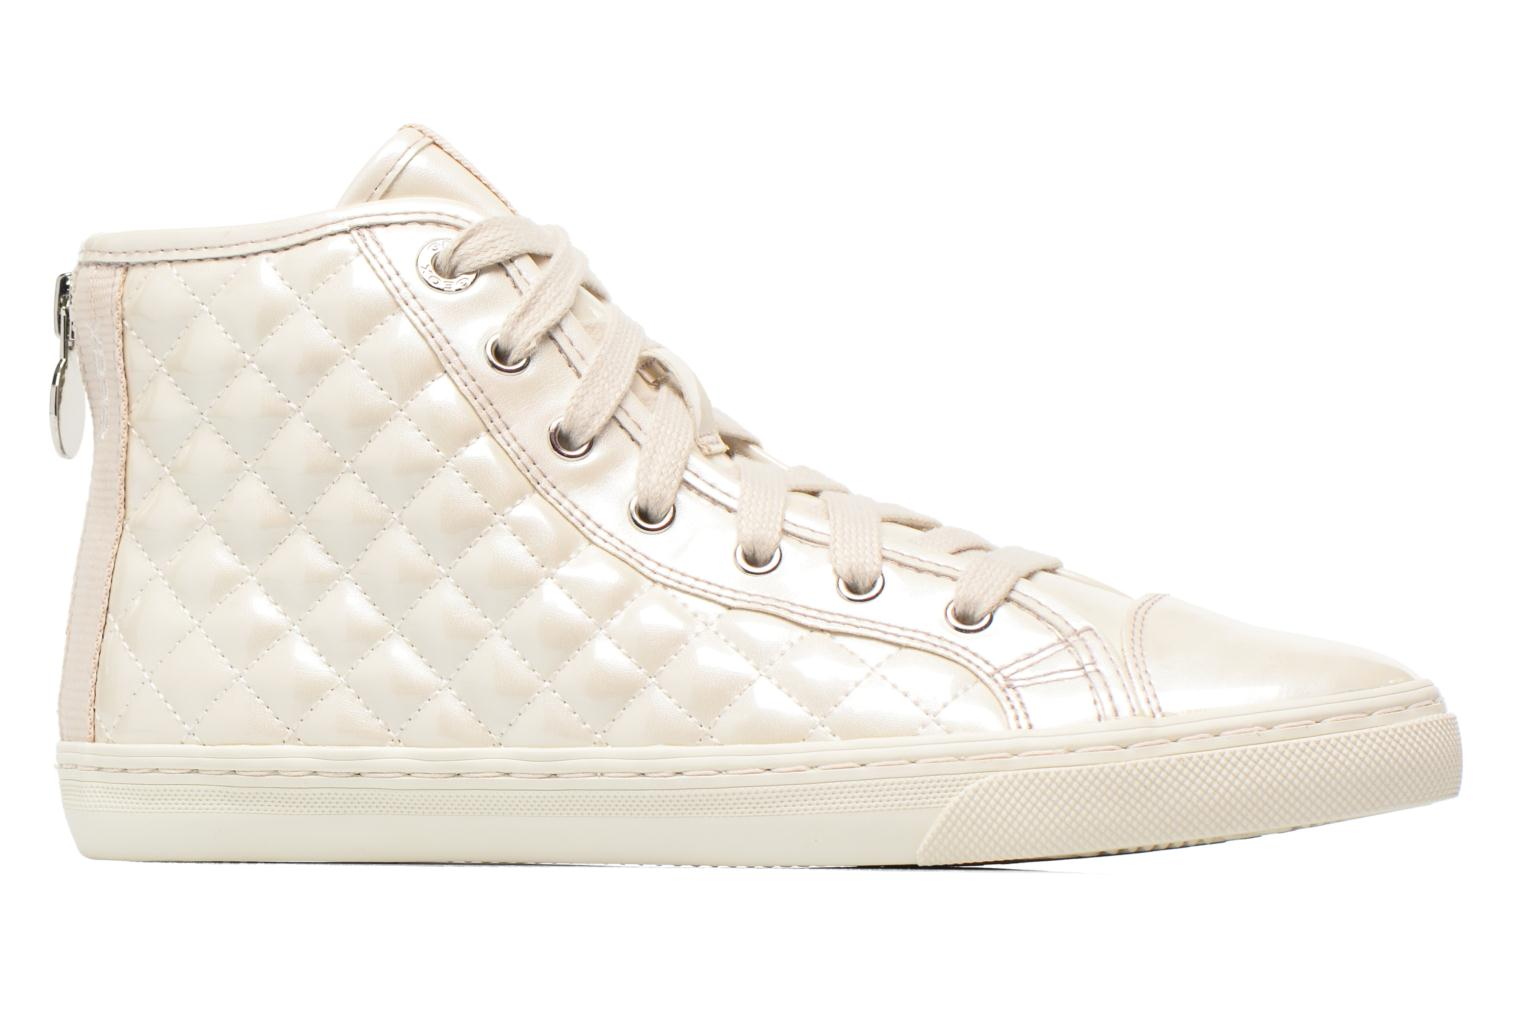 Donna Geox D New Club A D4258a Sneakers Beige